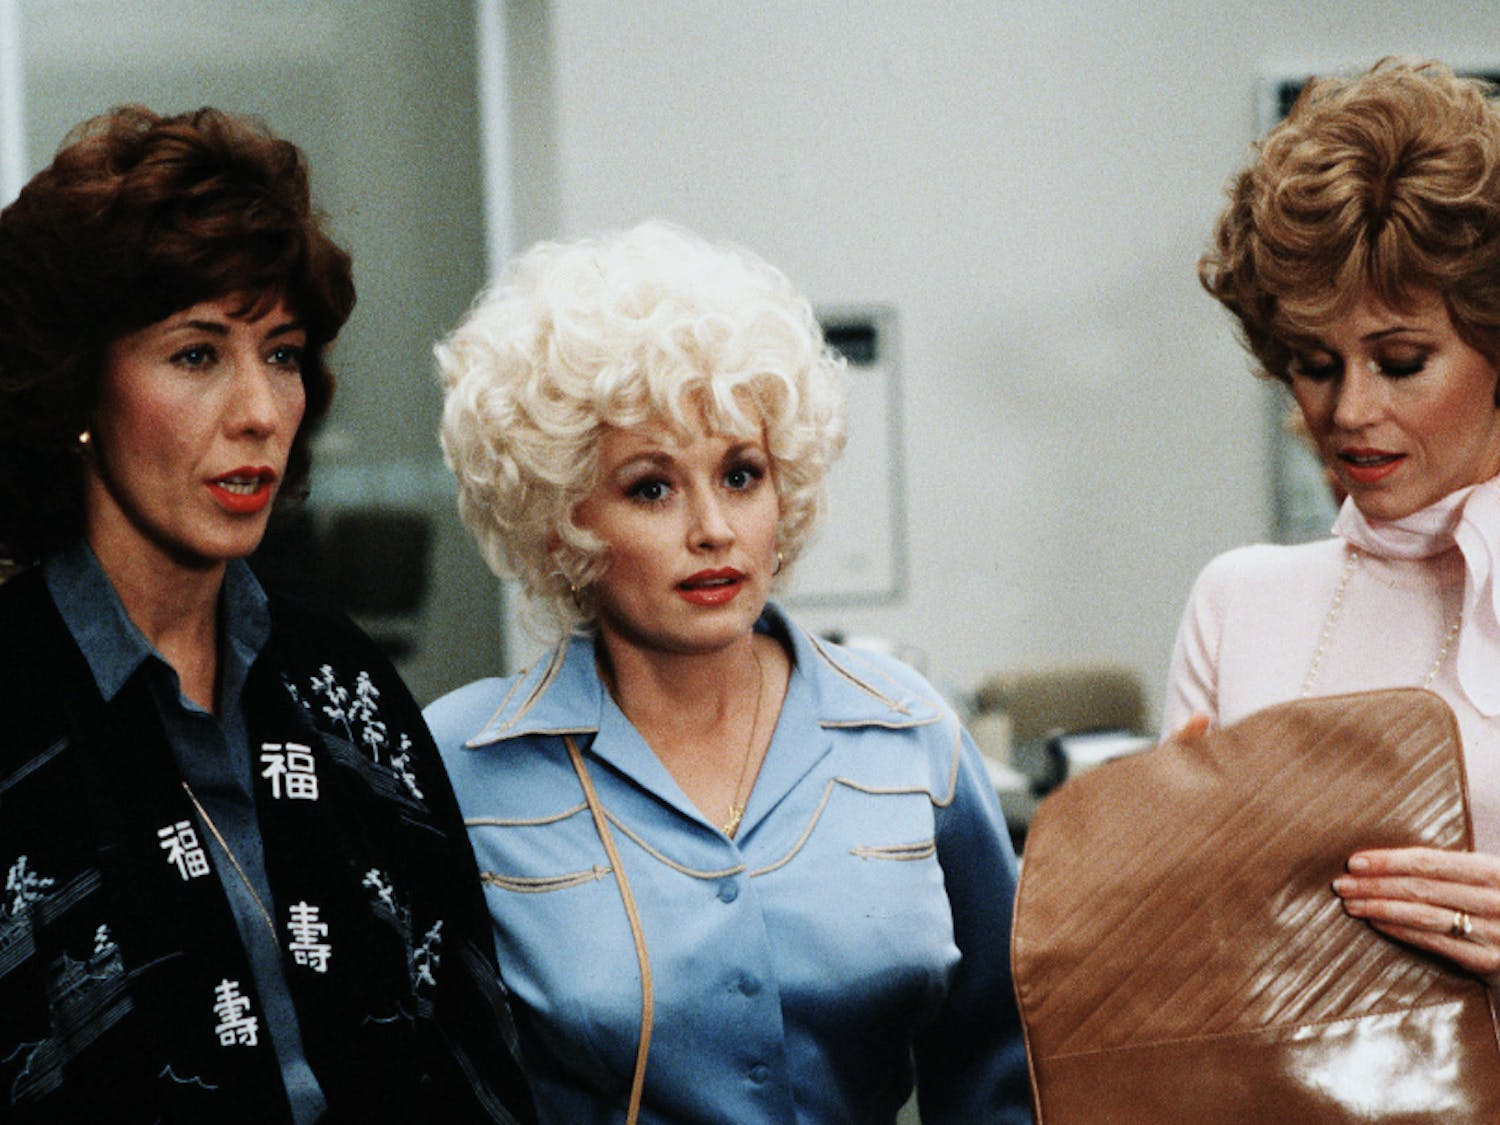 """9 to 5"" succeeds not just because of its timeless message or compelling characters, but because it embraces the power of women who work together."